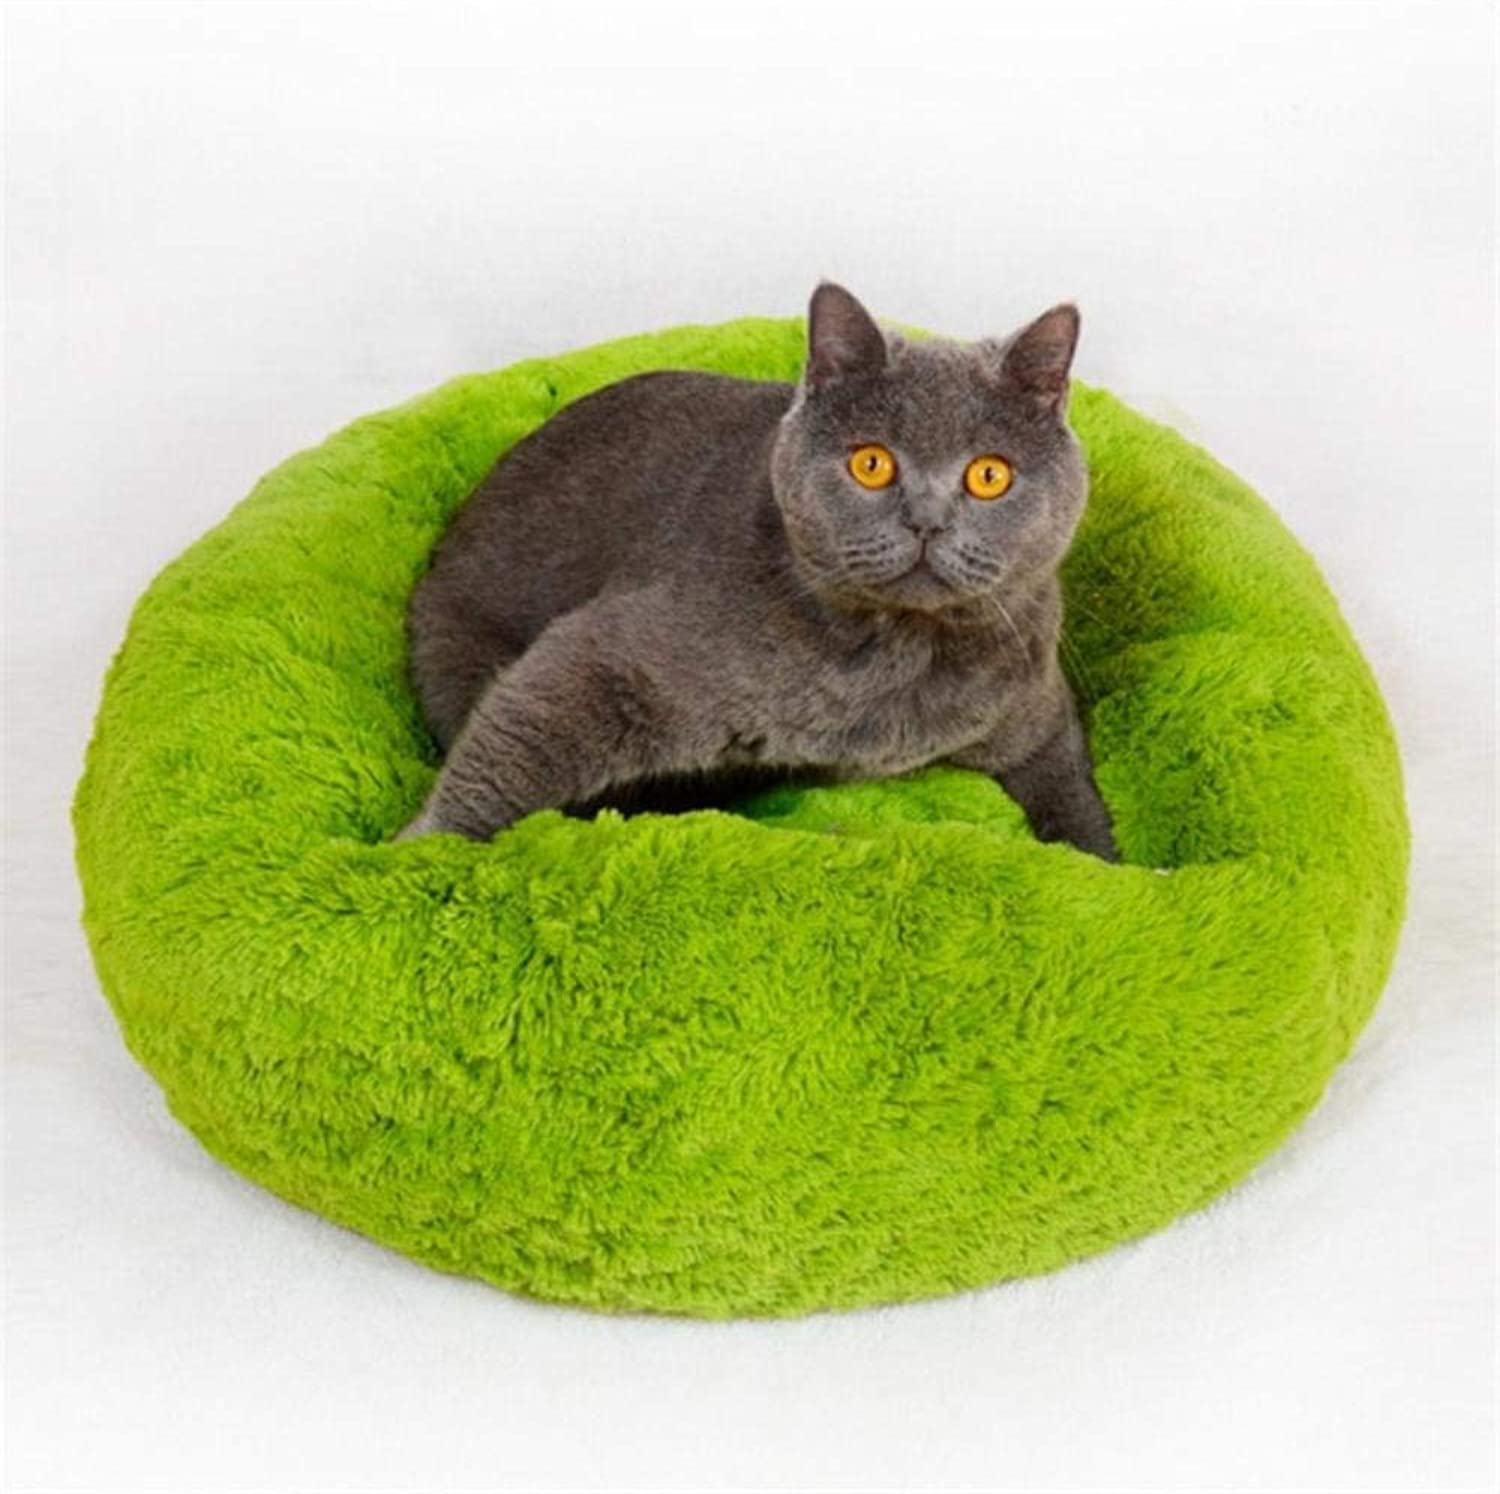 Luxury Dog Bed Warm Deep Sleep Thick Donut Pet Beds for Cat Small Medium Dogs LongPile Plush Soft Round Dog House (L 70cm 15kg Pet,Green)